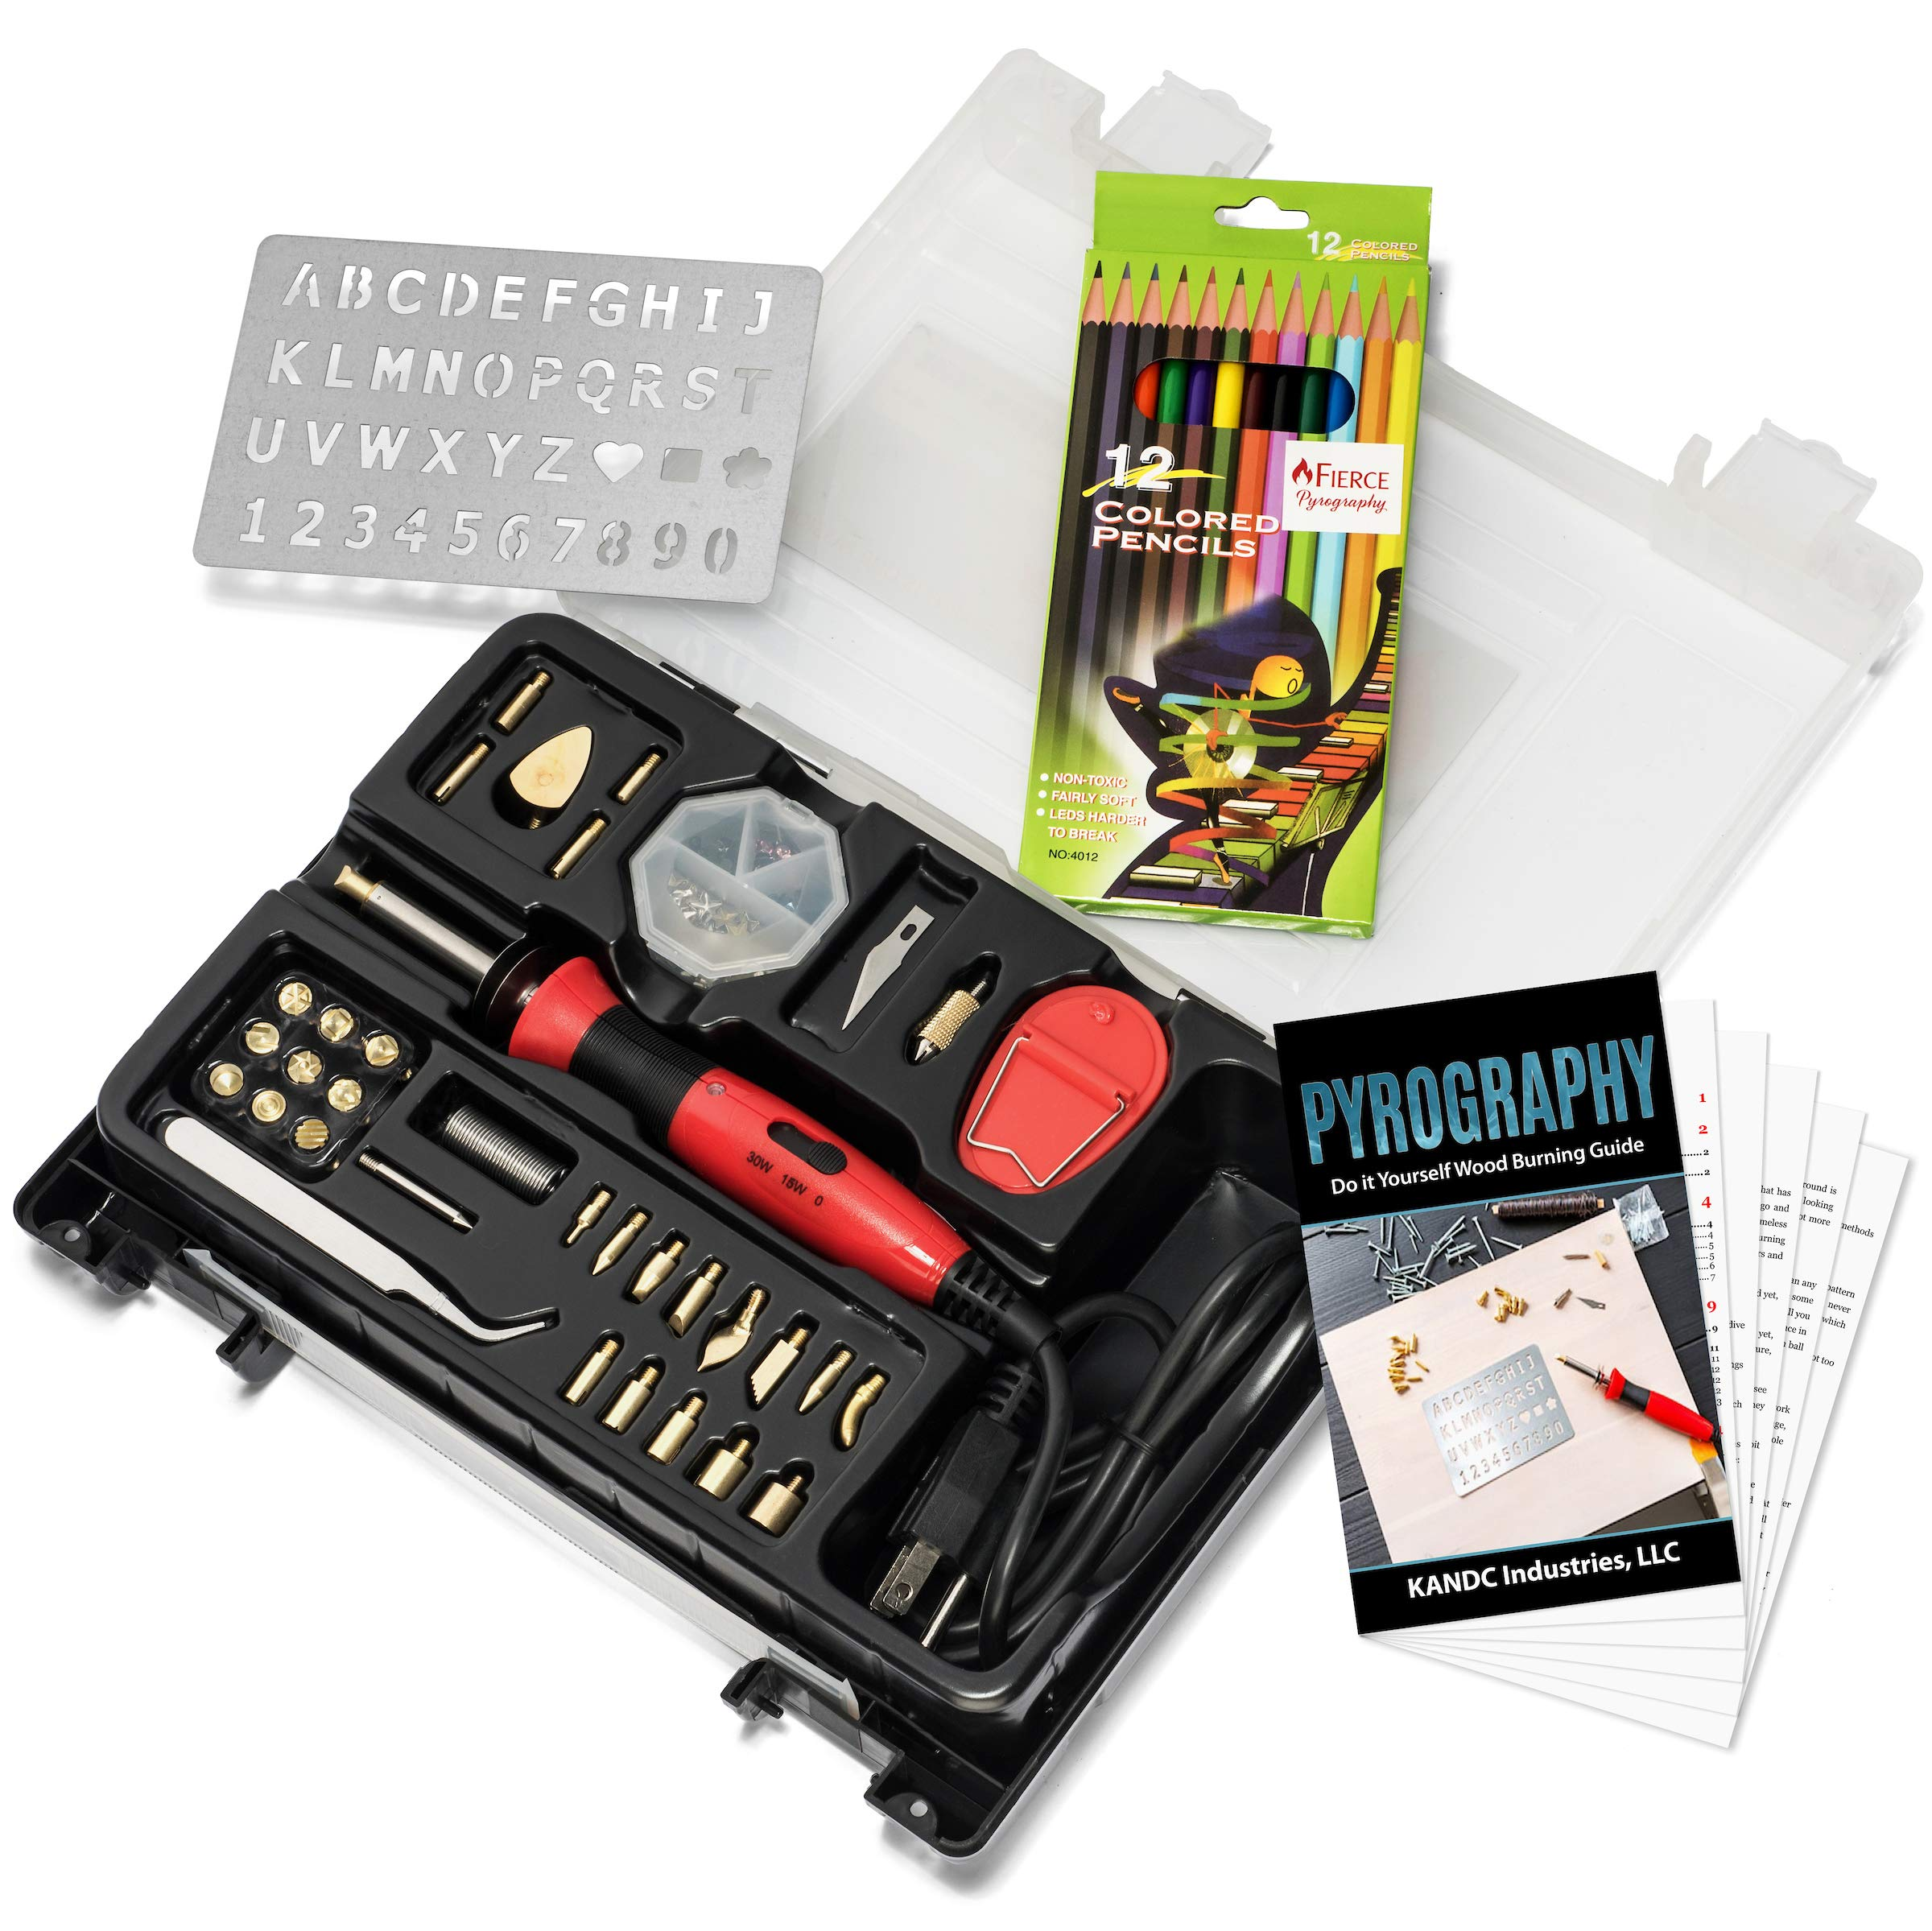 Fierce Pyrography Complete Wood Burning Kit Includes Dual Power Pen,Carving and Stamping Tips, Diamond Soldering Set, Coloring Pencils,Tweezers, Number Letter Stencil, Carry Case and Bonus Ebook